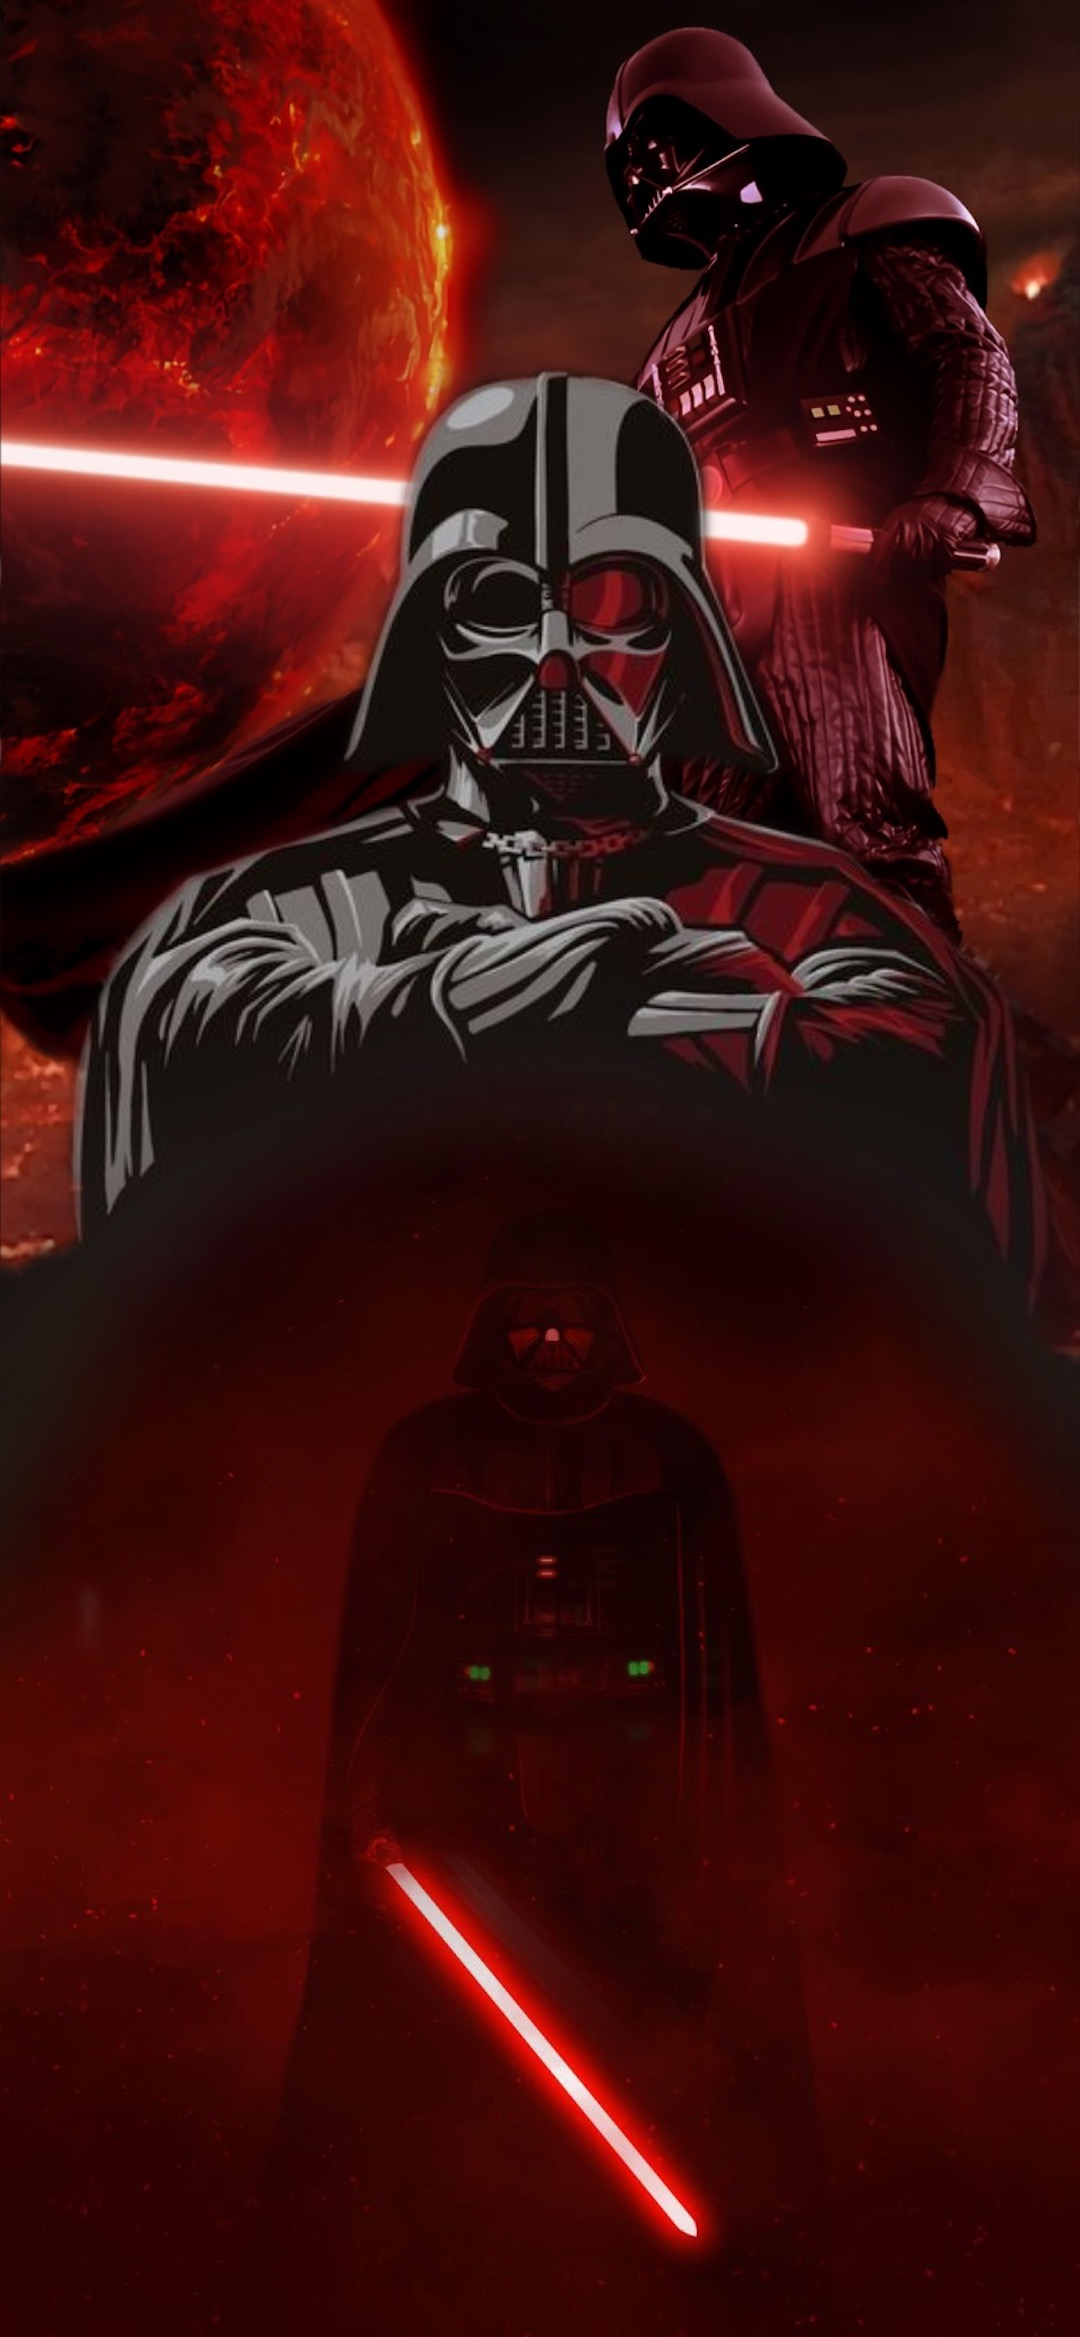 darth vader star wars iphone X wallpaper by iamjoeya